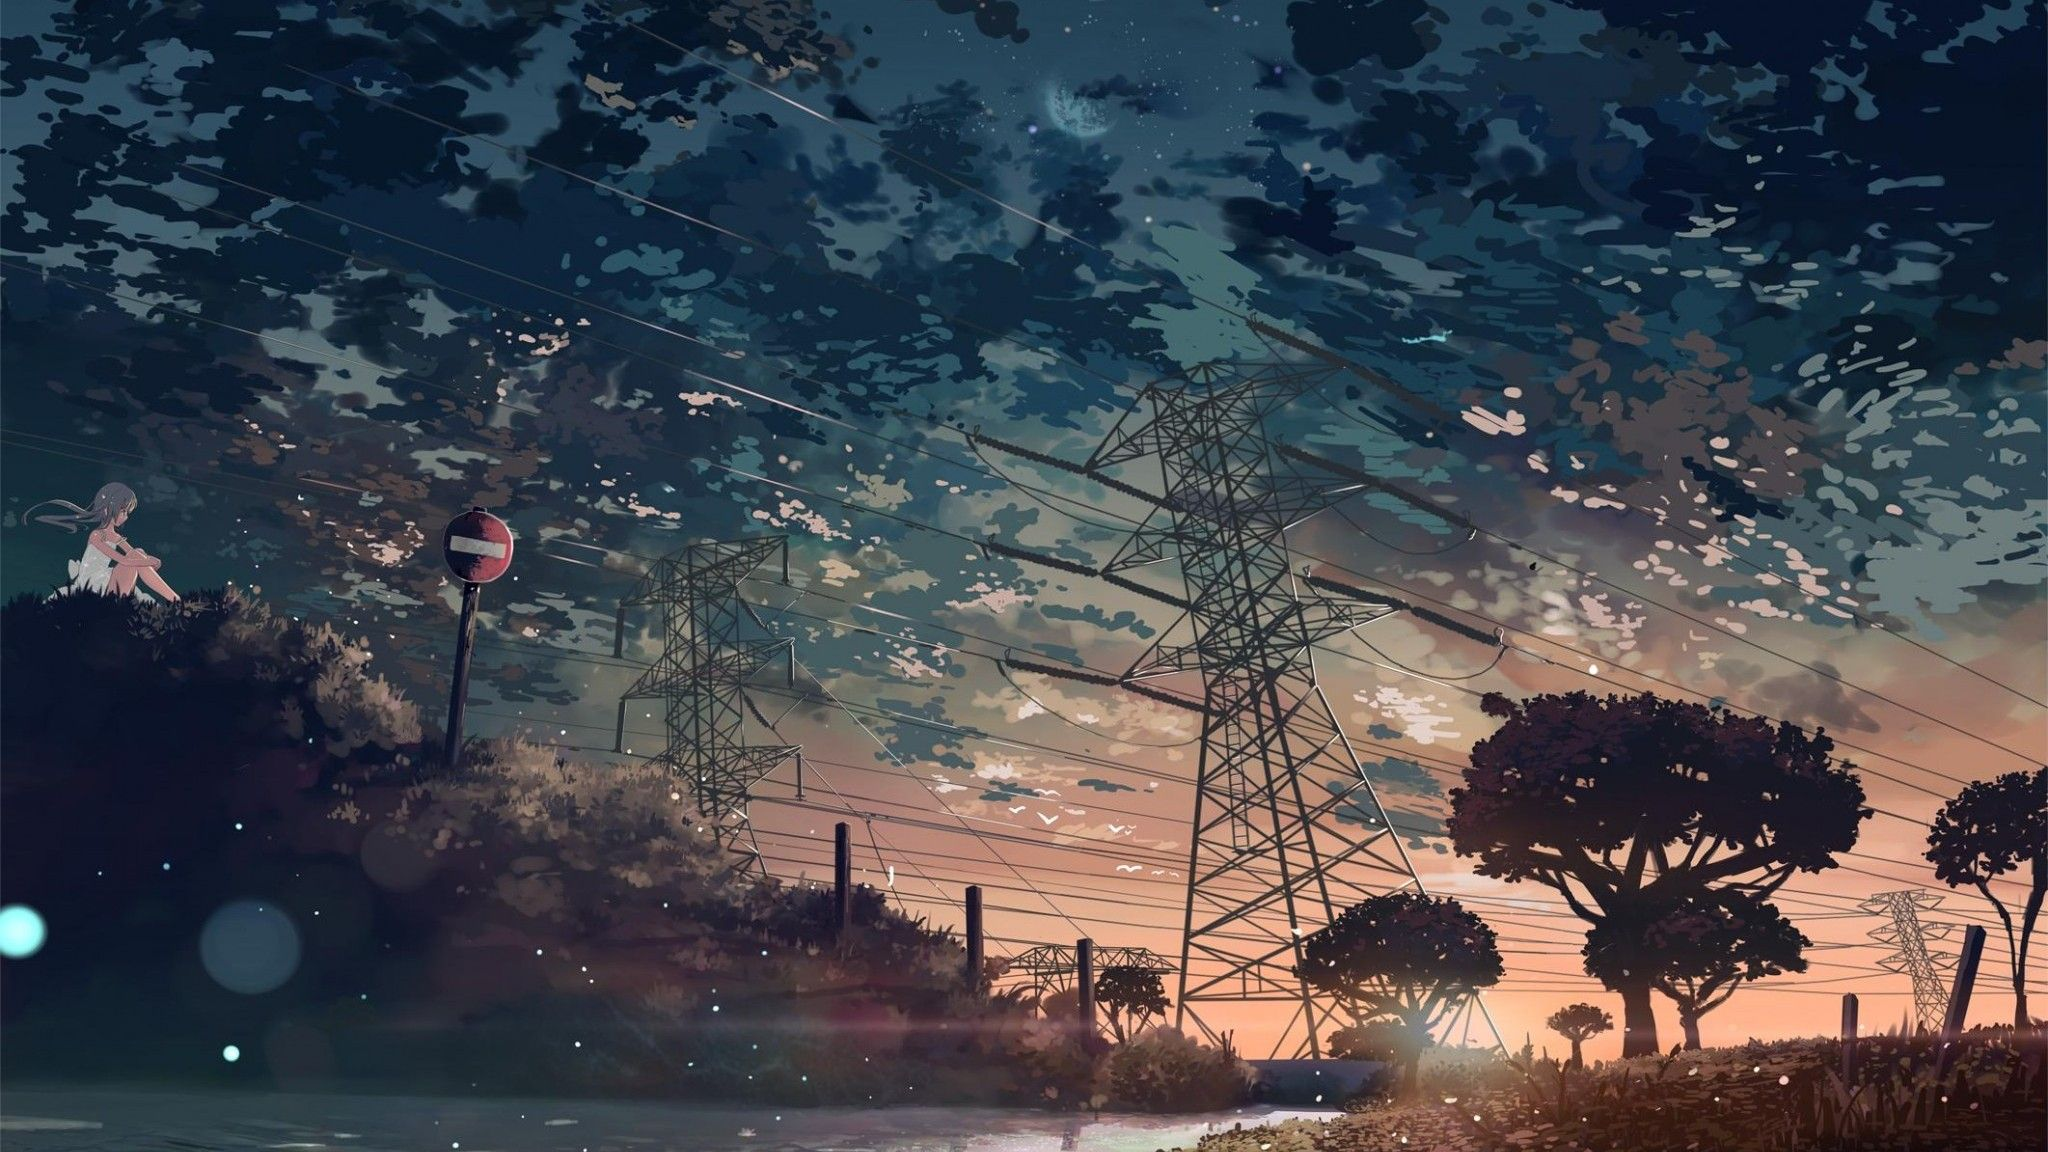 Landscape Beautiful Girl Anime Summer Anime Scenery Scenery Wallpaper Anime Scenery Wallpaper